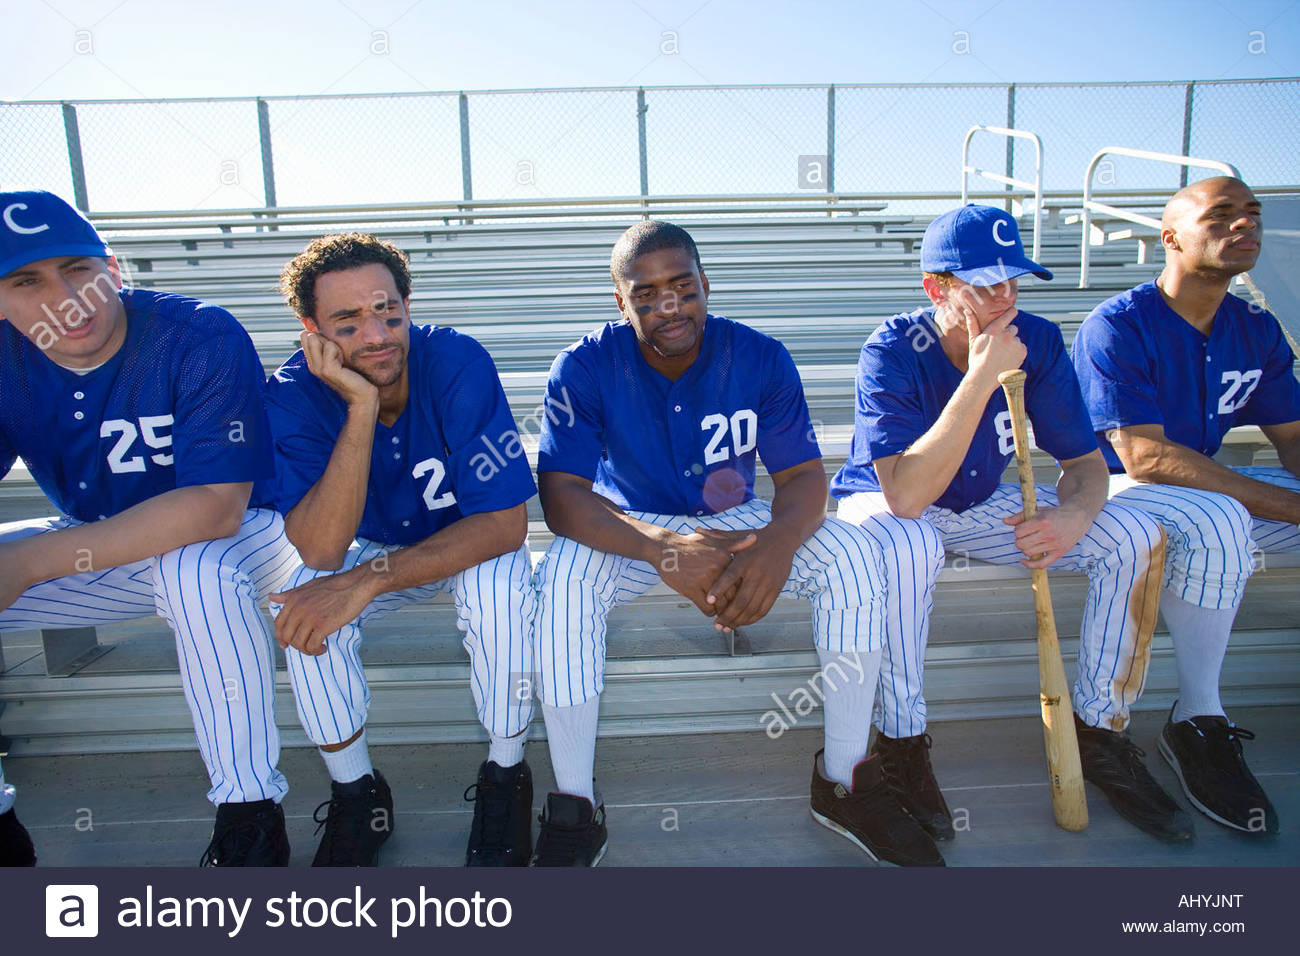 Dejected baseball team sitting on bench in stand during competitive baseball game, looking gloomy, front view backlit - Stock Image